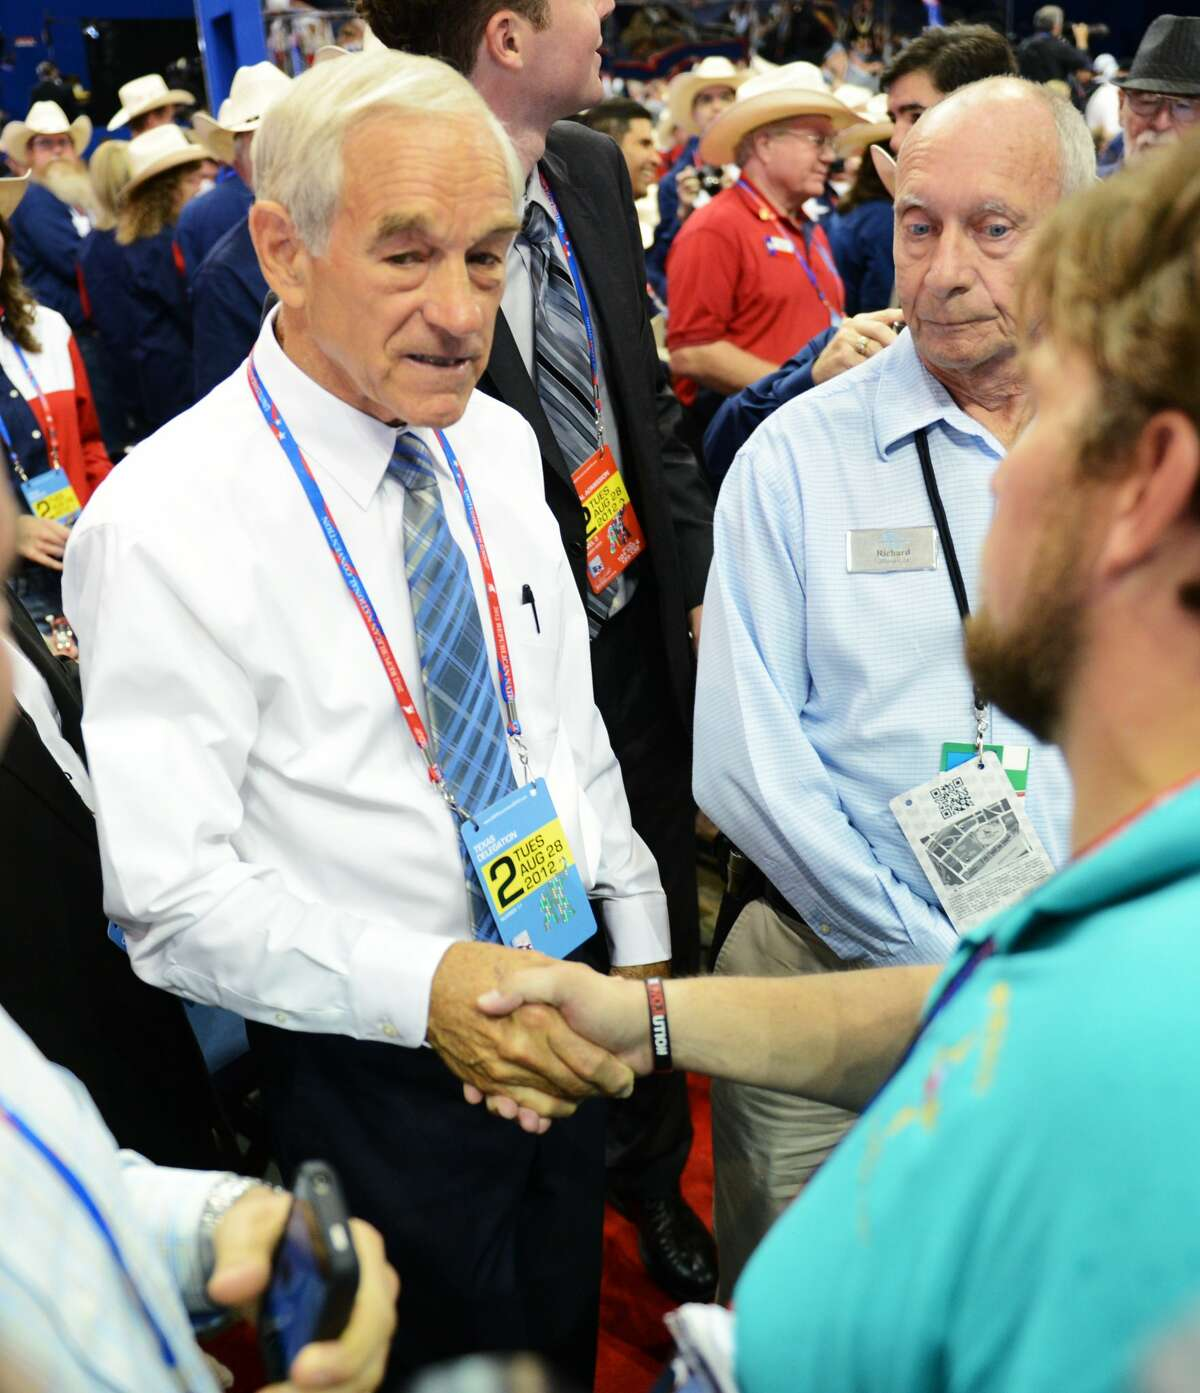 Rep. Ron Paul (R-TX/14) greets convention attendees at the second session of the 2012 Republican National Convention at the Tampa Bay Times Forum in Tampa, Tuesday, August 28, 2012. (Lionel Hahn/Abaca Press/MCT) (Lionel Hahn / McClatchy-Tribune News Service)